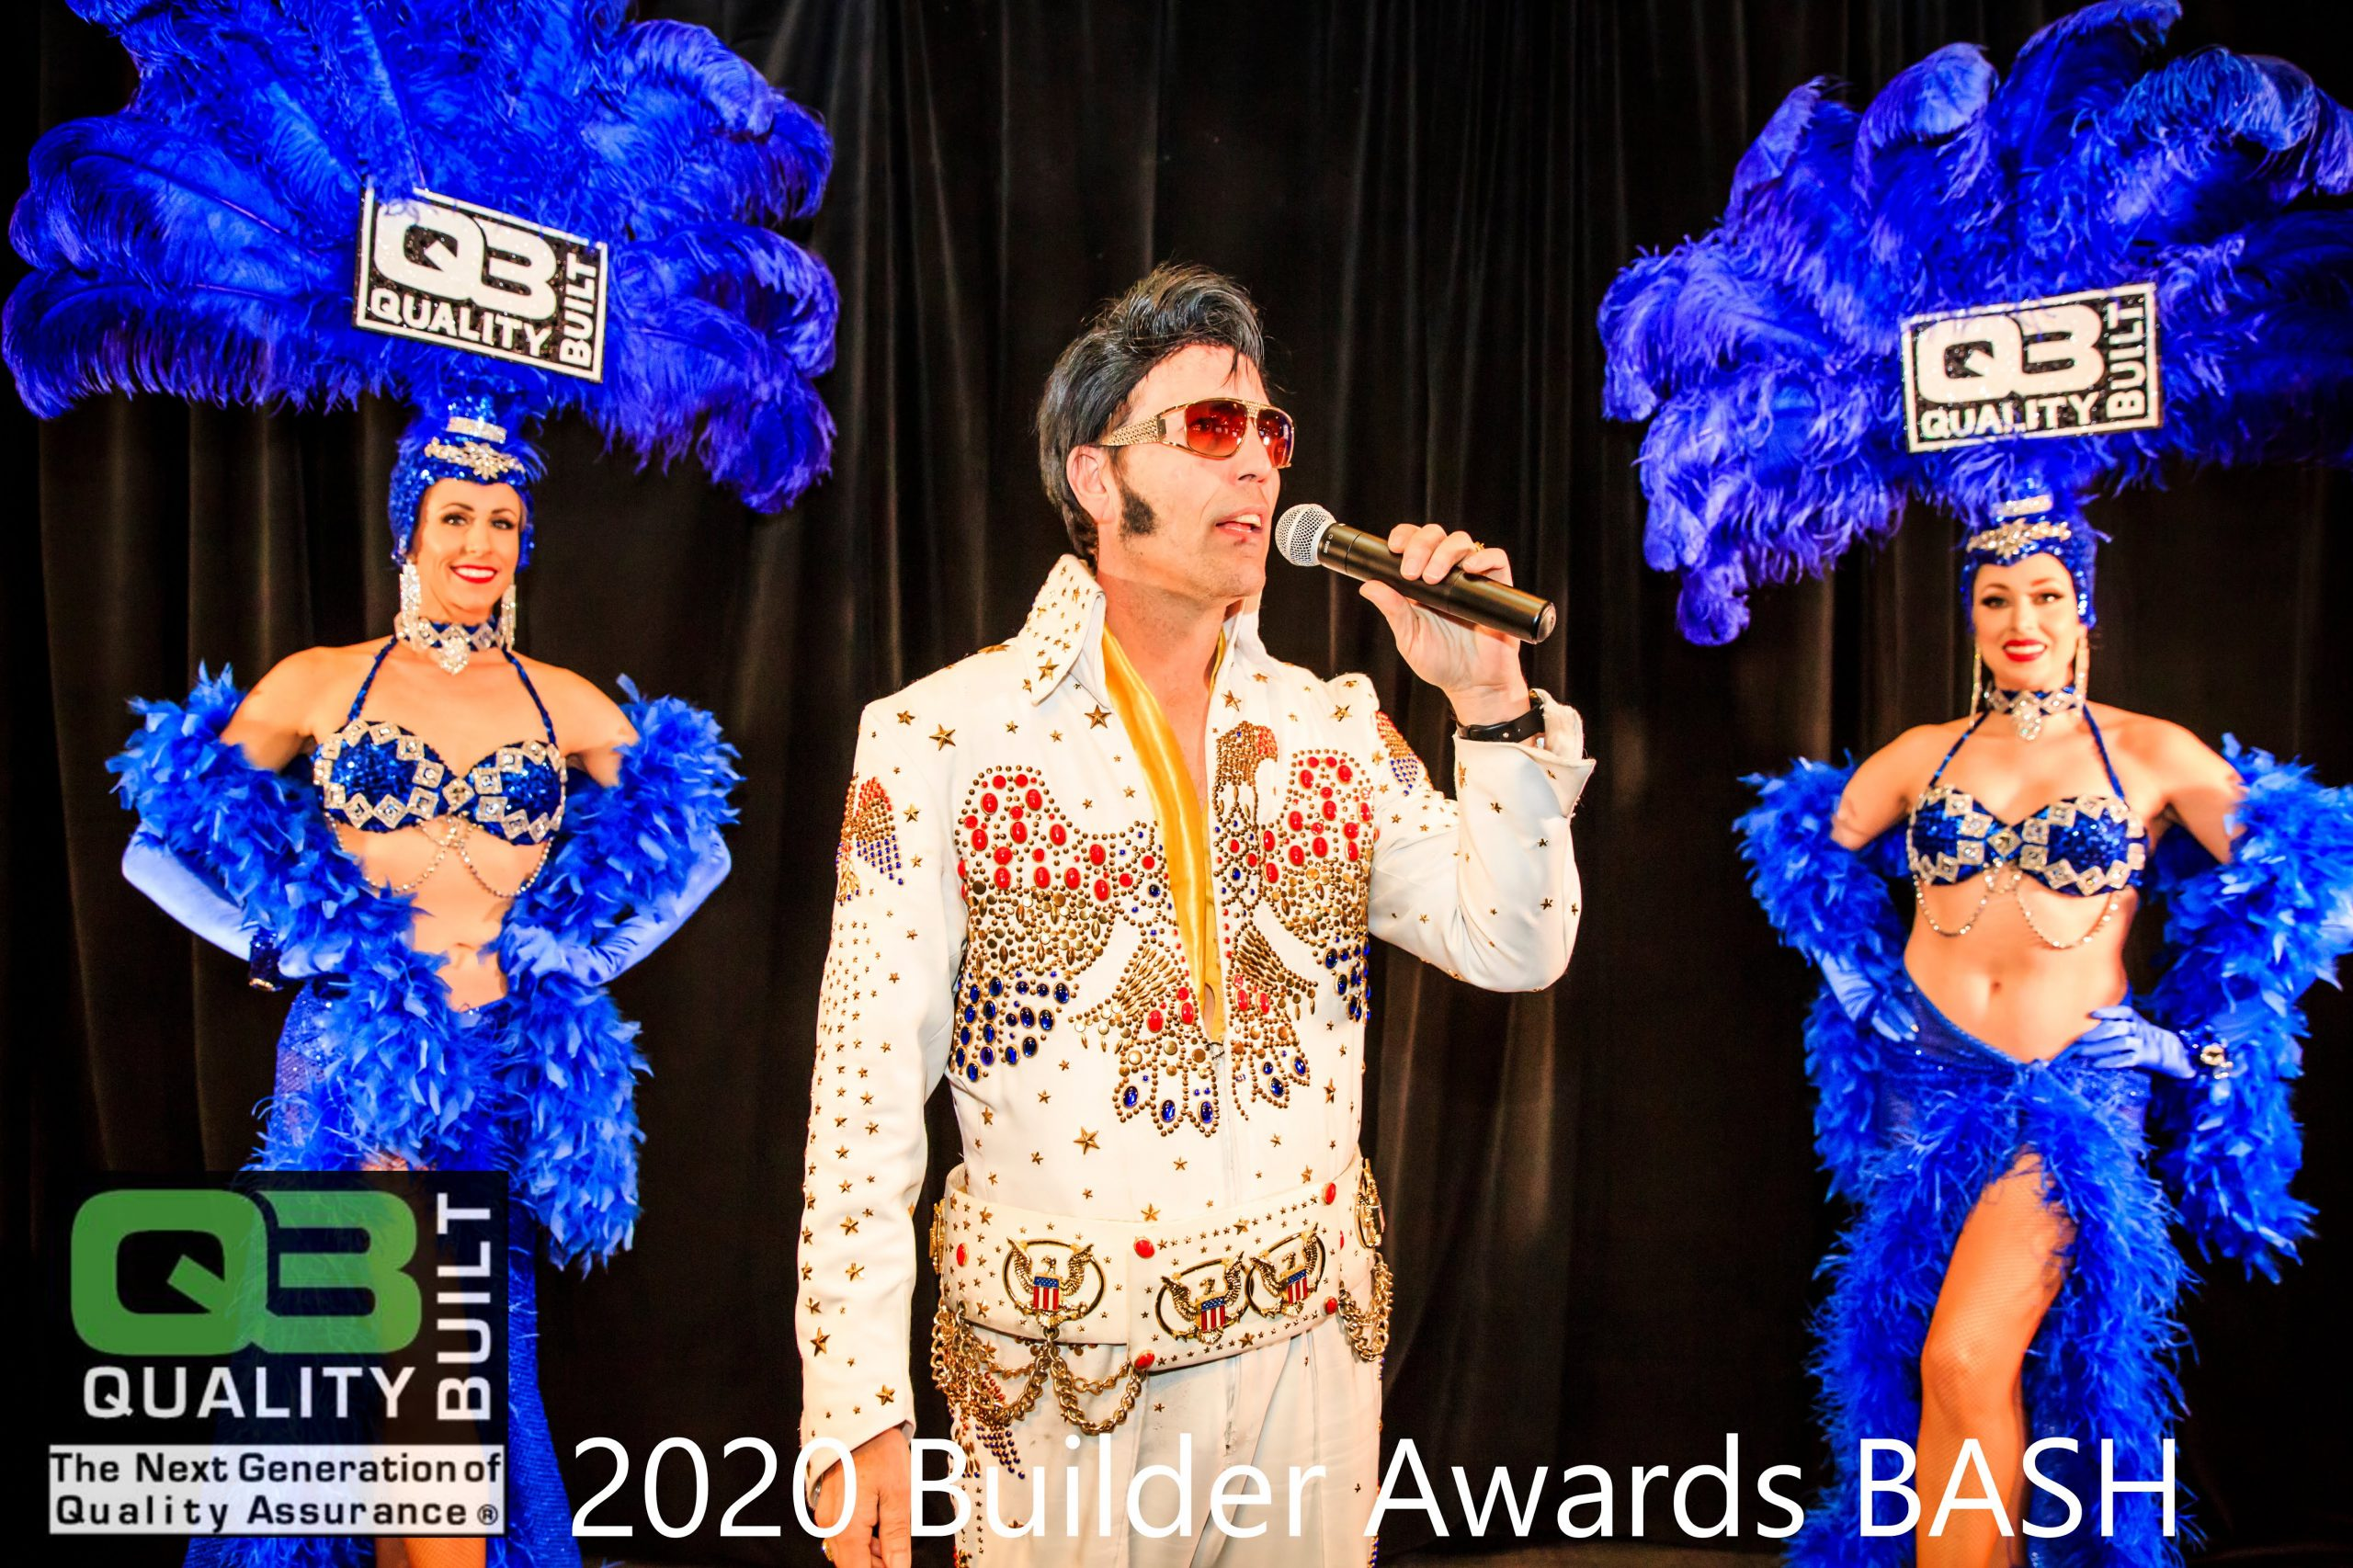 elvis-and-showgirls-at-qb-builder-awards